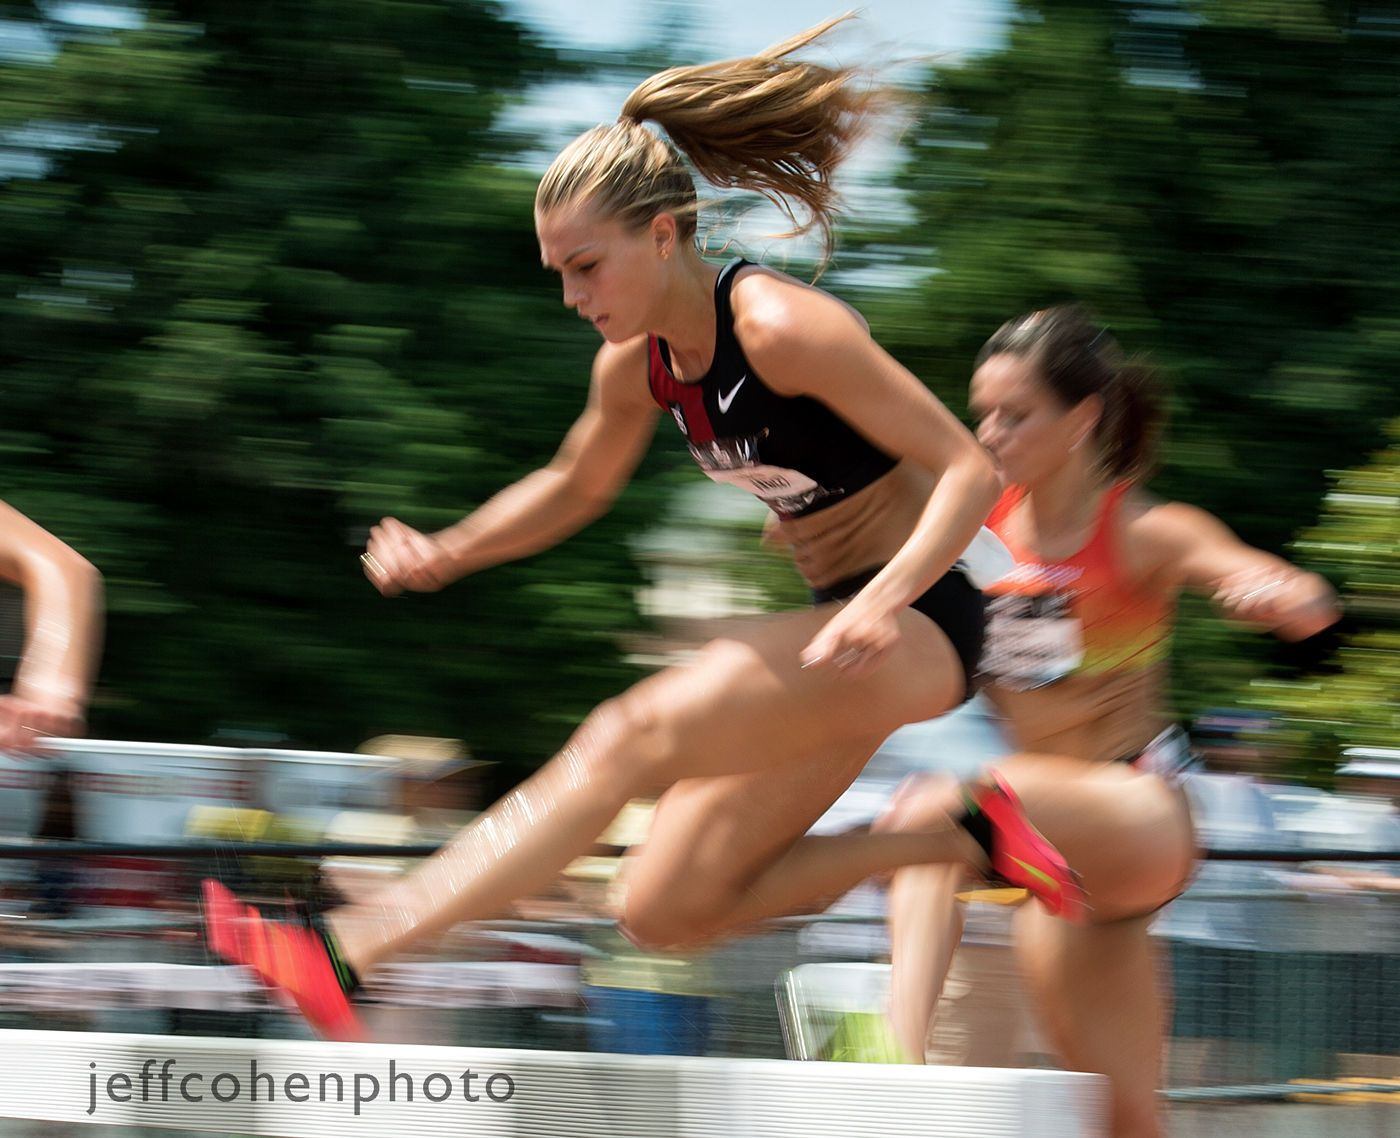 1r2015_usaoutdoors_day3_0817_quigley__jeff_cohen_web.jpg